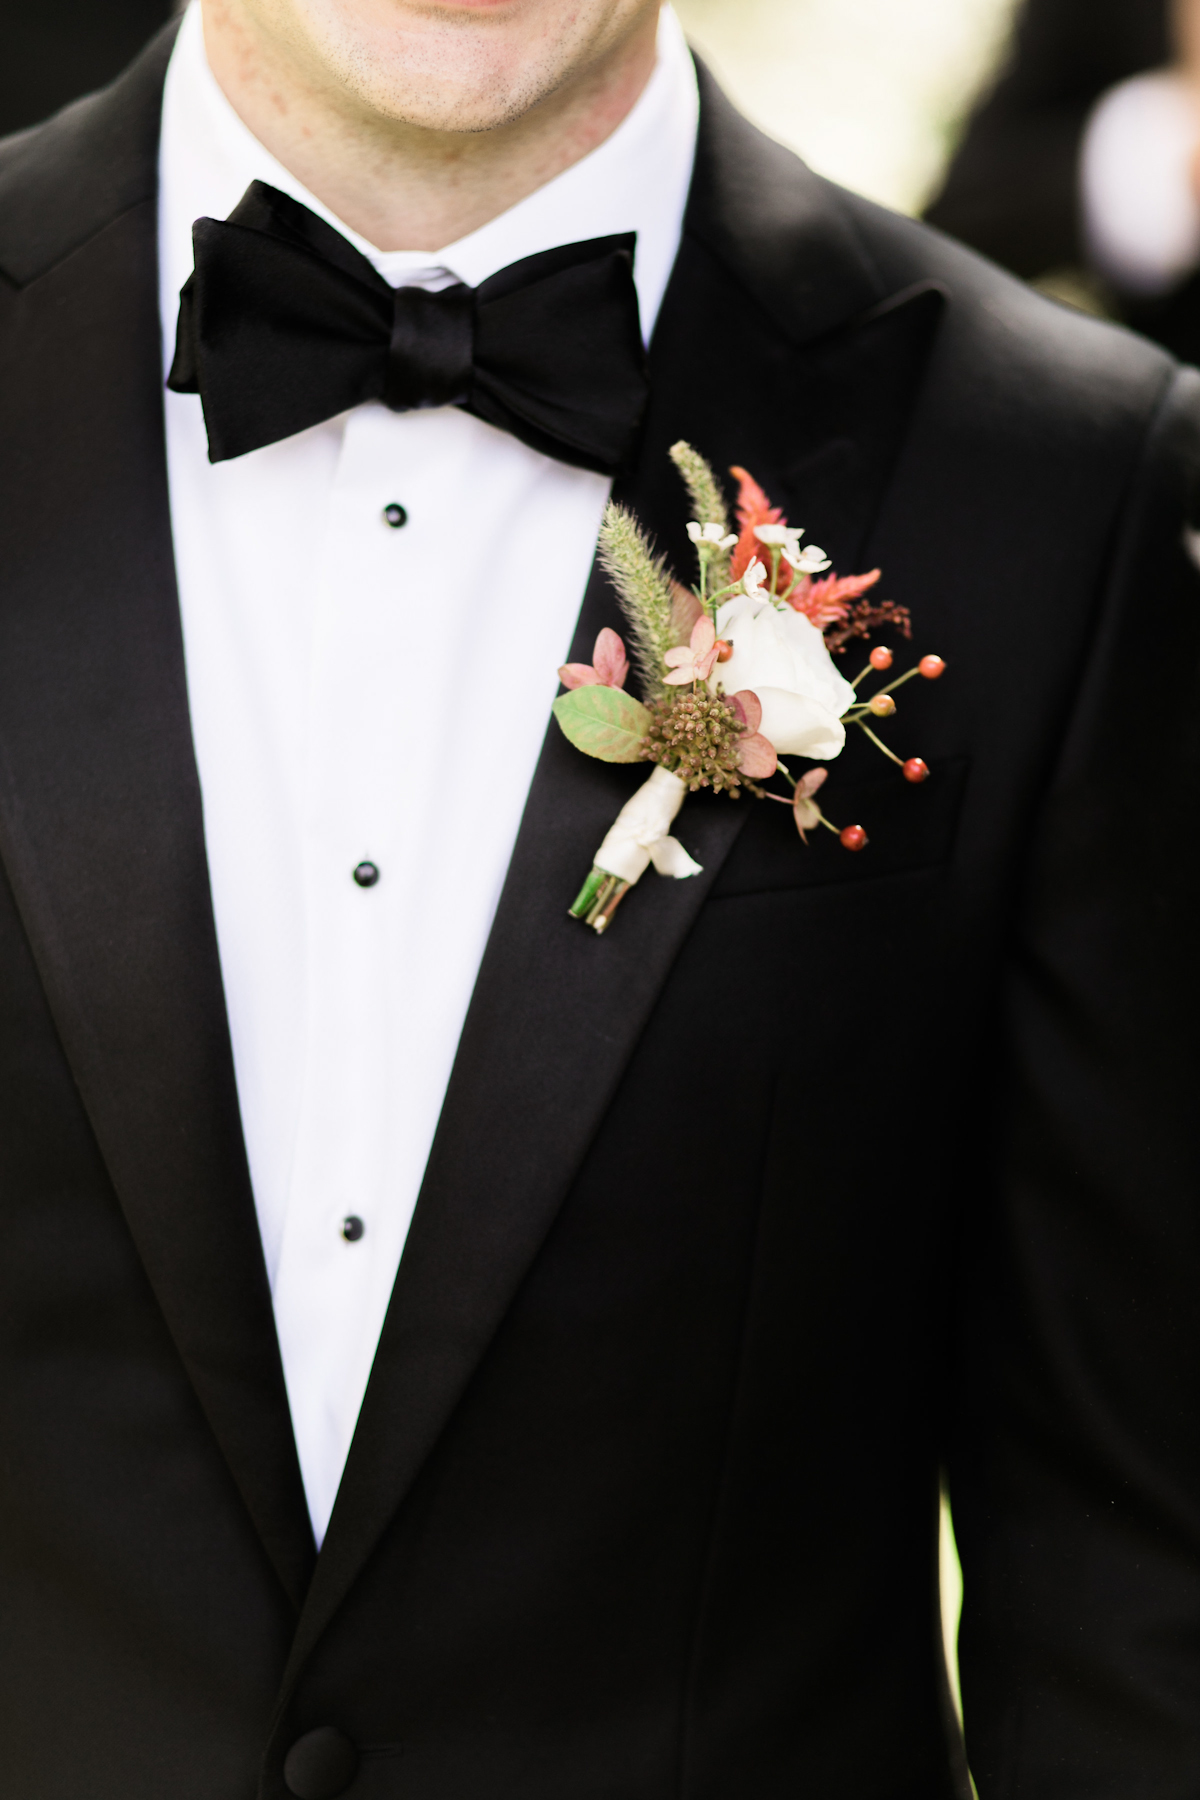 Black tuxedo and boutonniere for Plaza wedding